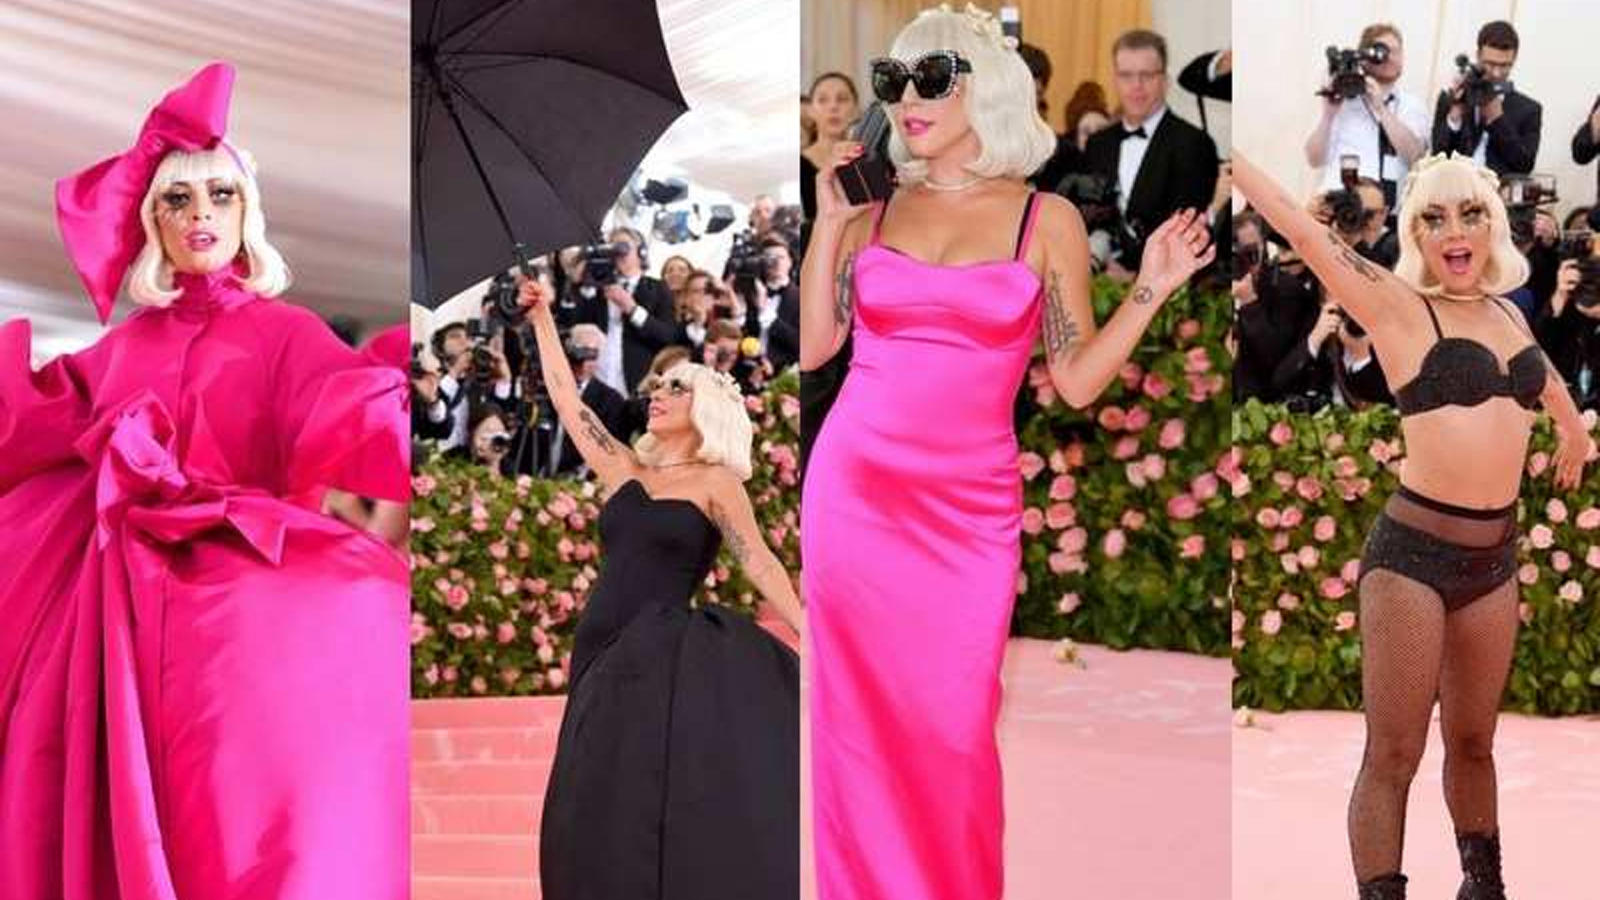 Met Gala 2019: Lady Gaga performs 4 dramatic costume changes on red carpet